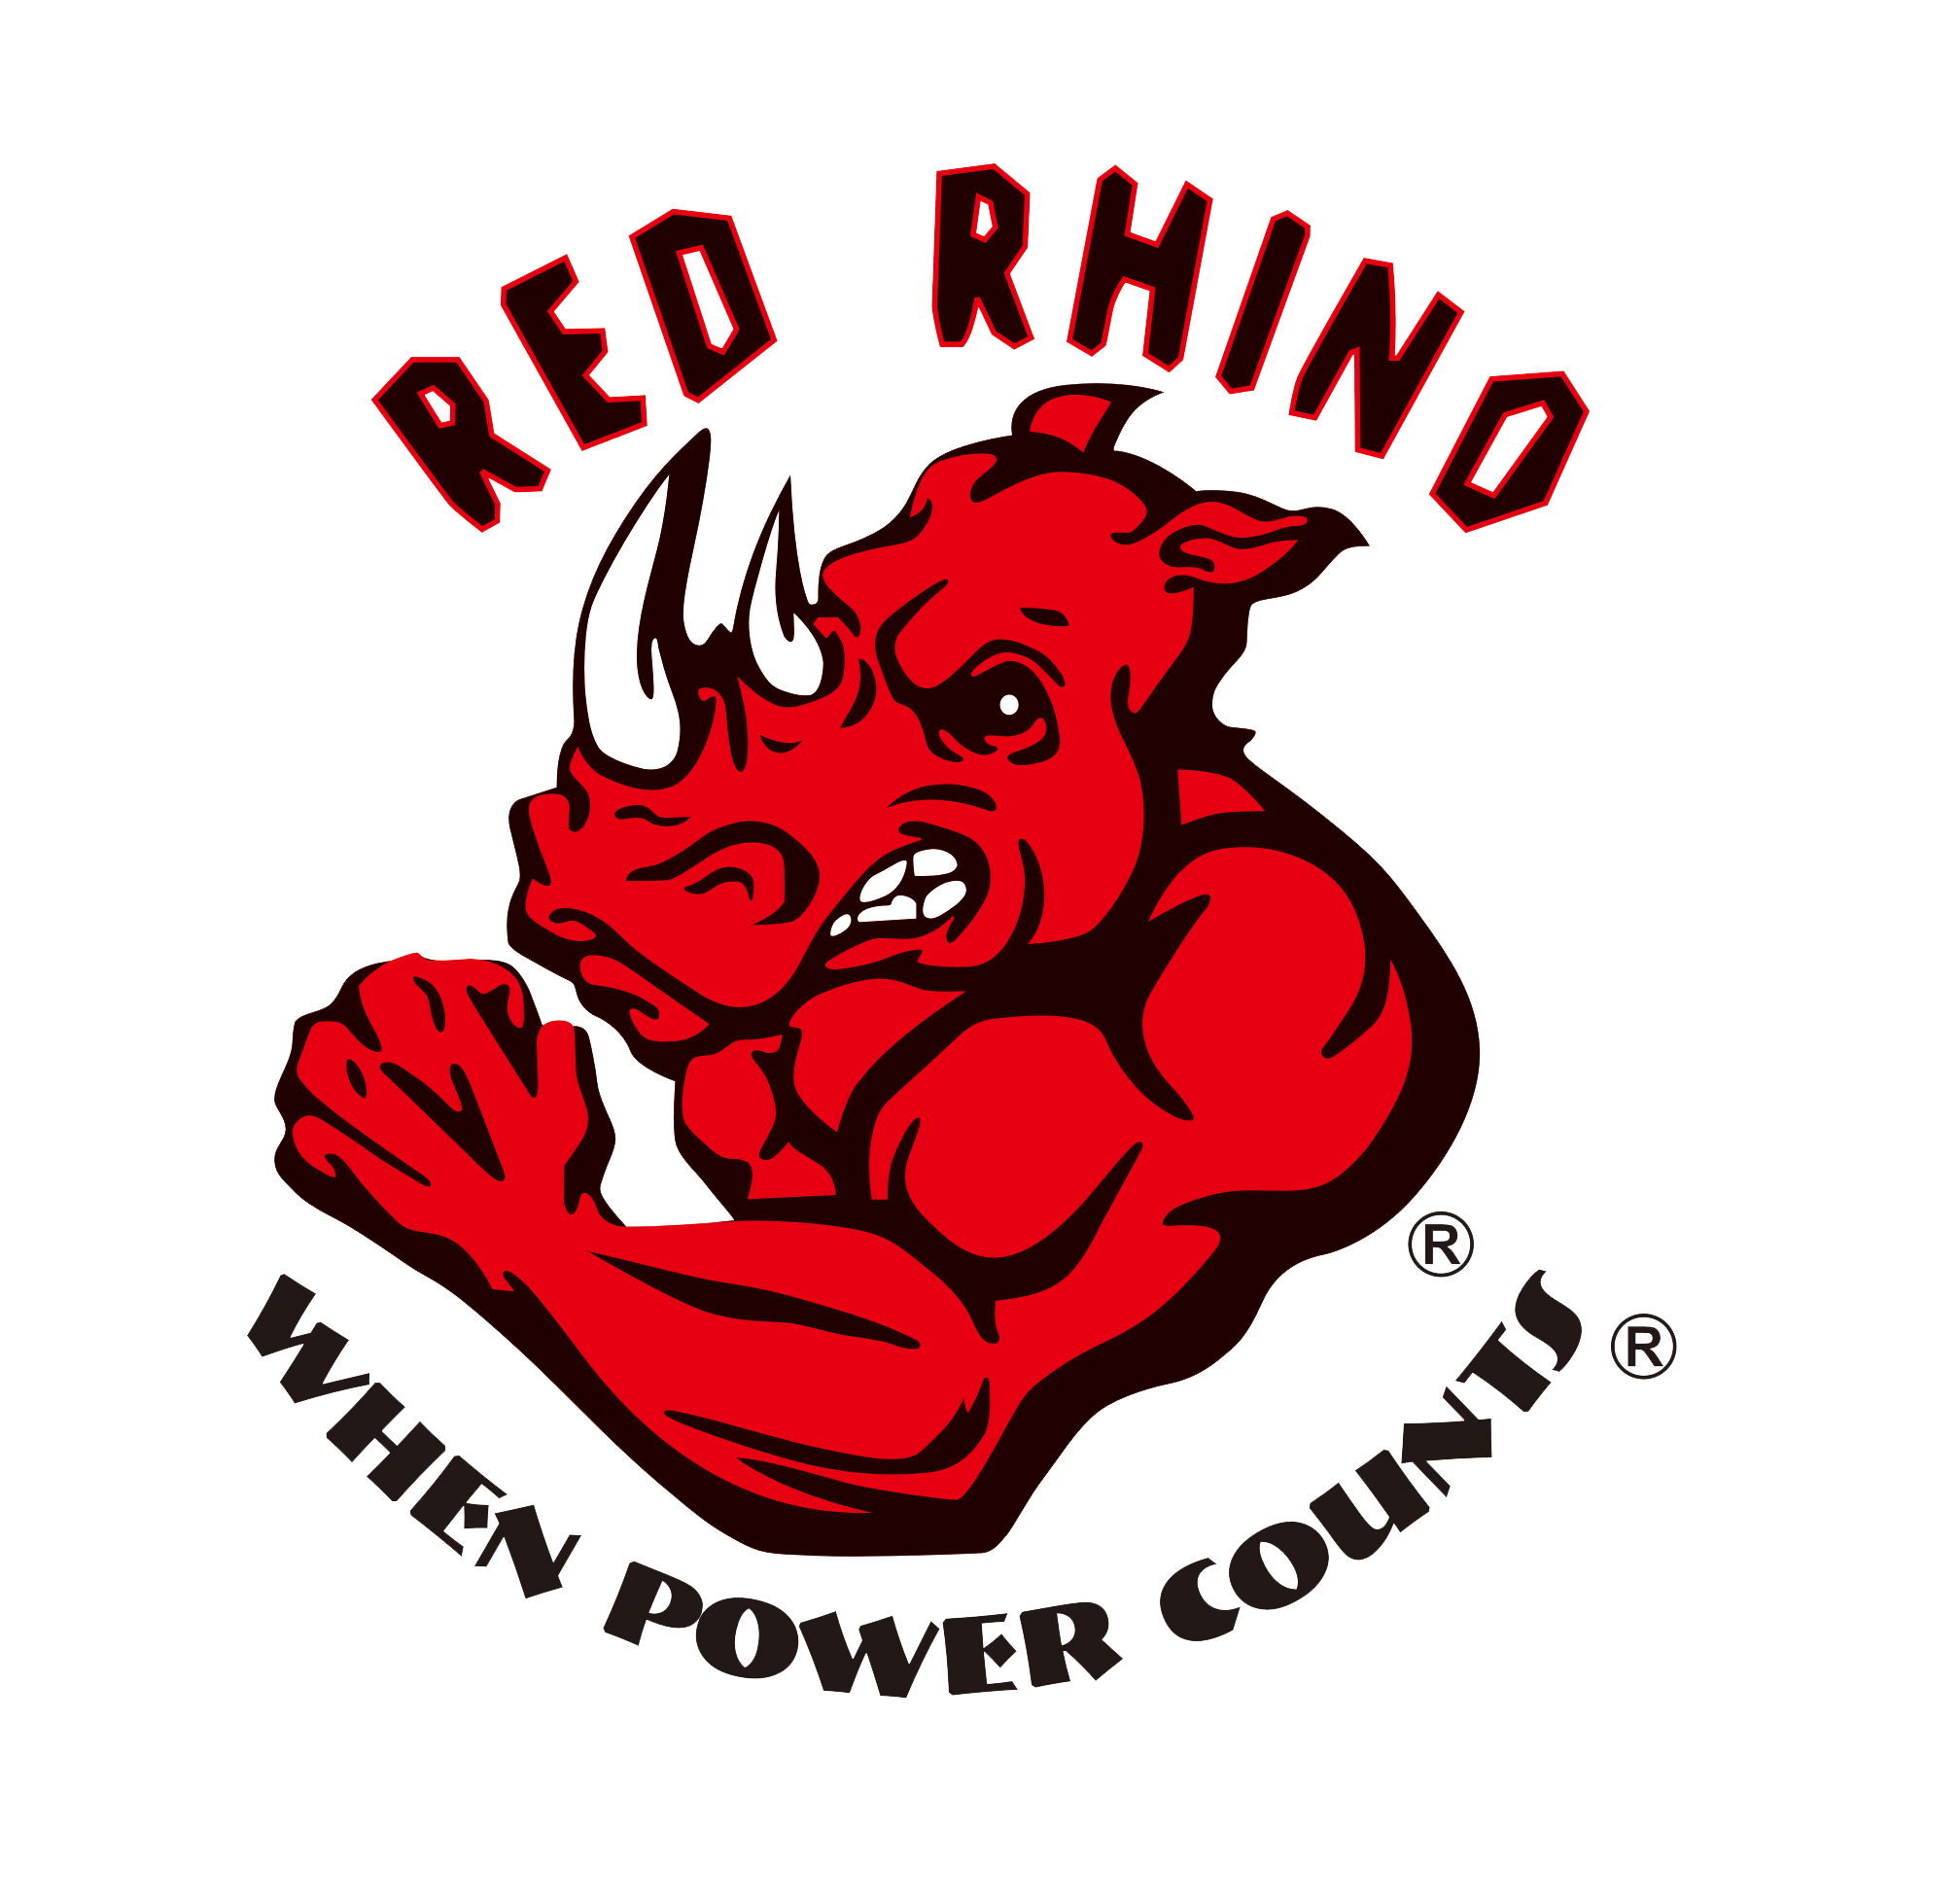 Red Rhino Fireworks available at J&J Nursery!